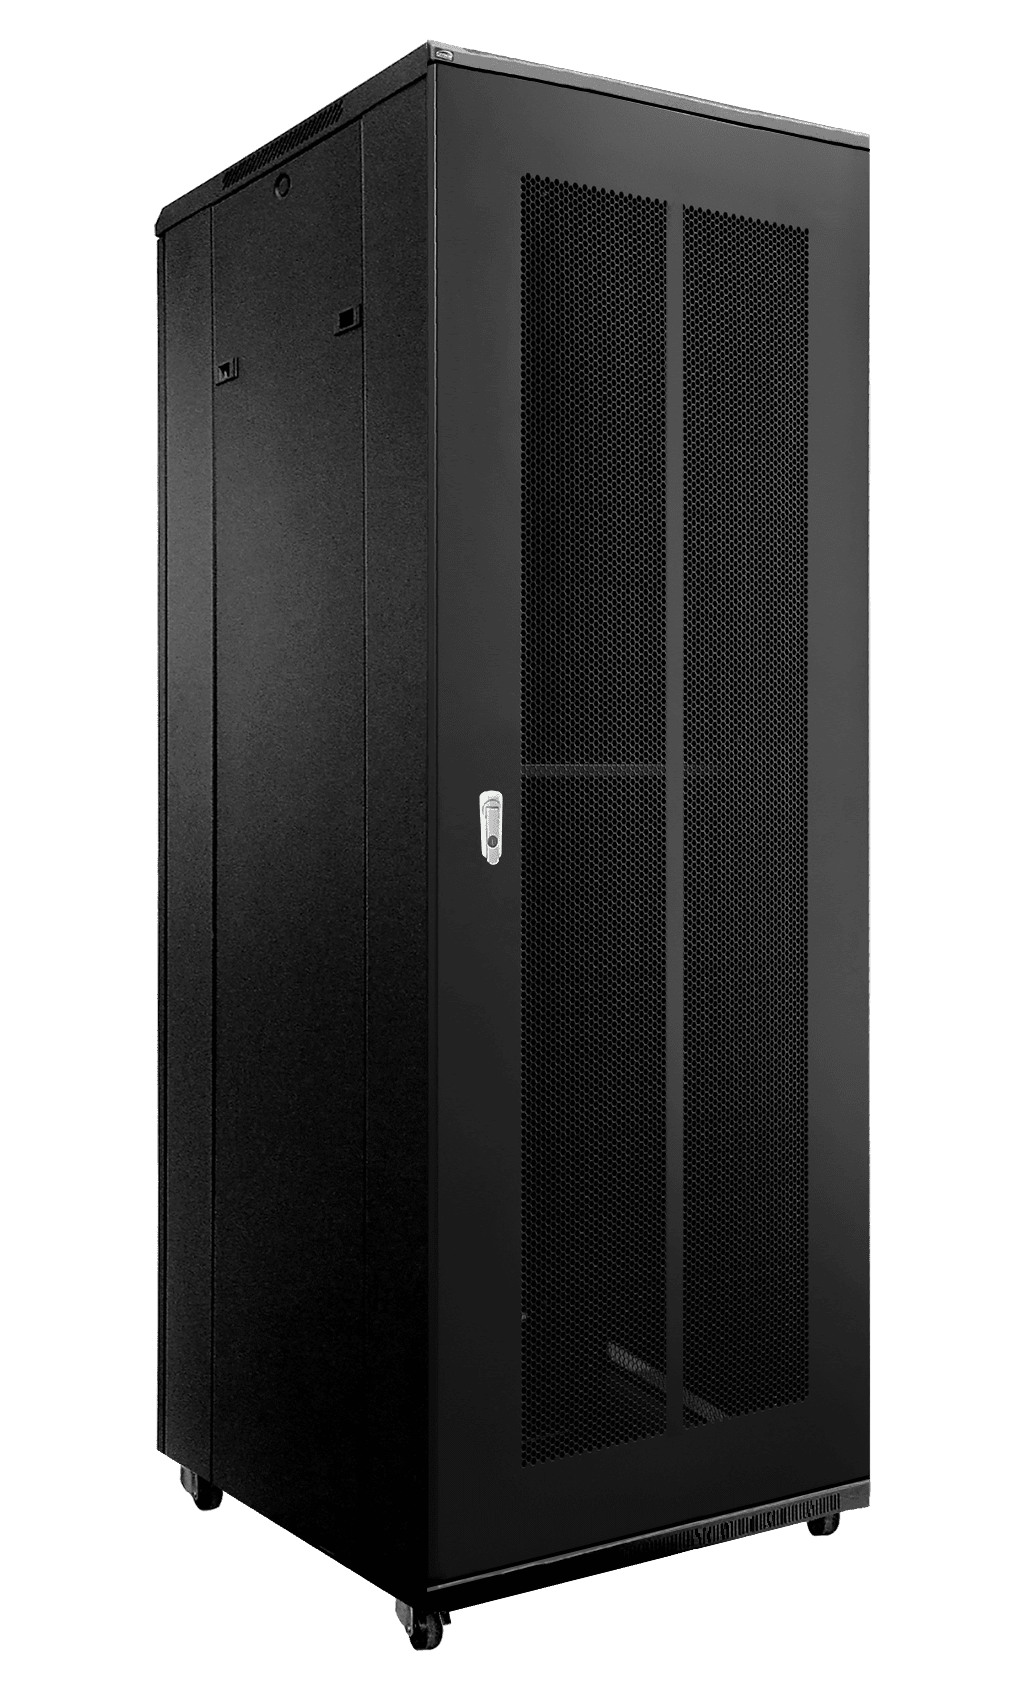 "SPR8842GG - 19"" rack cabinet - 42 units - 800mm W x 800mm D - Grill front & rear door"